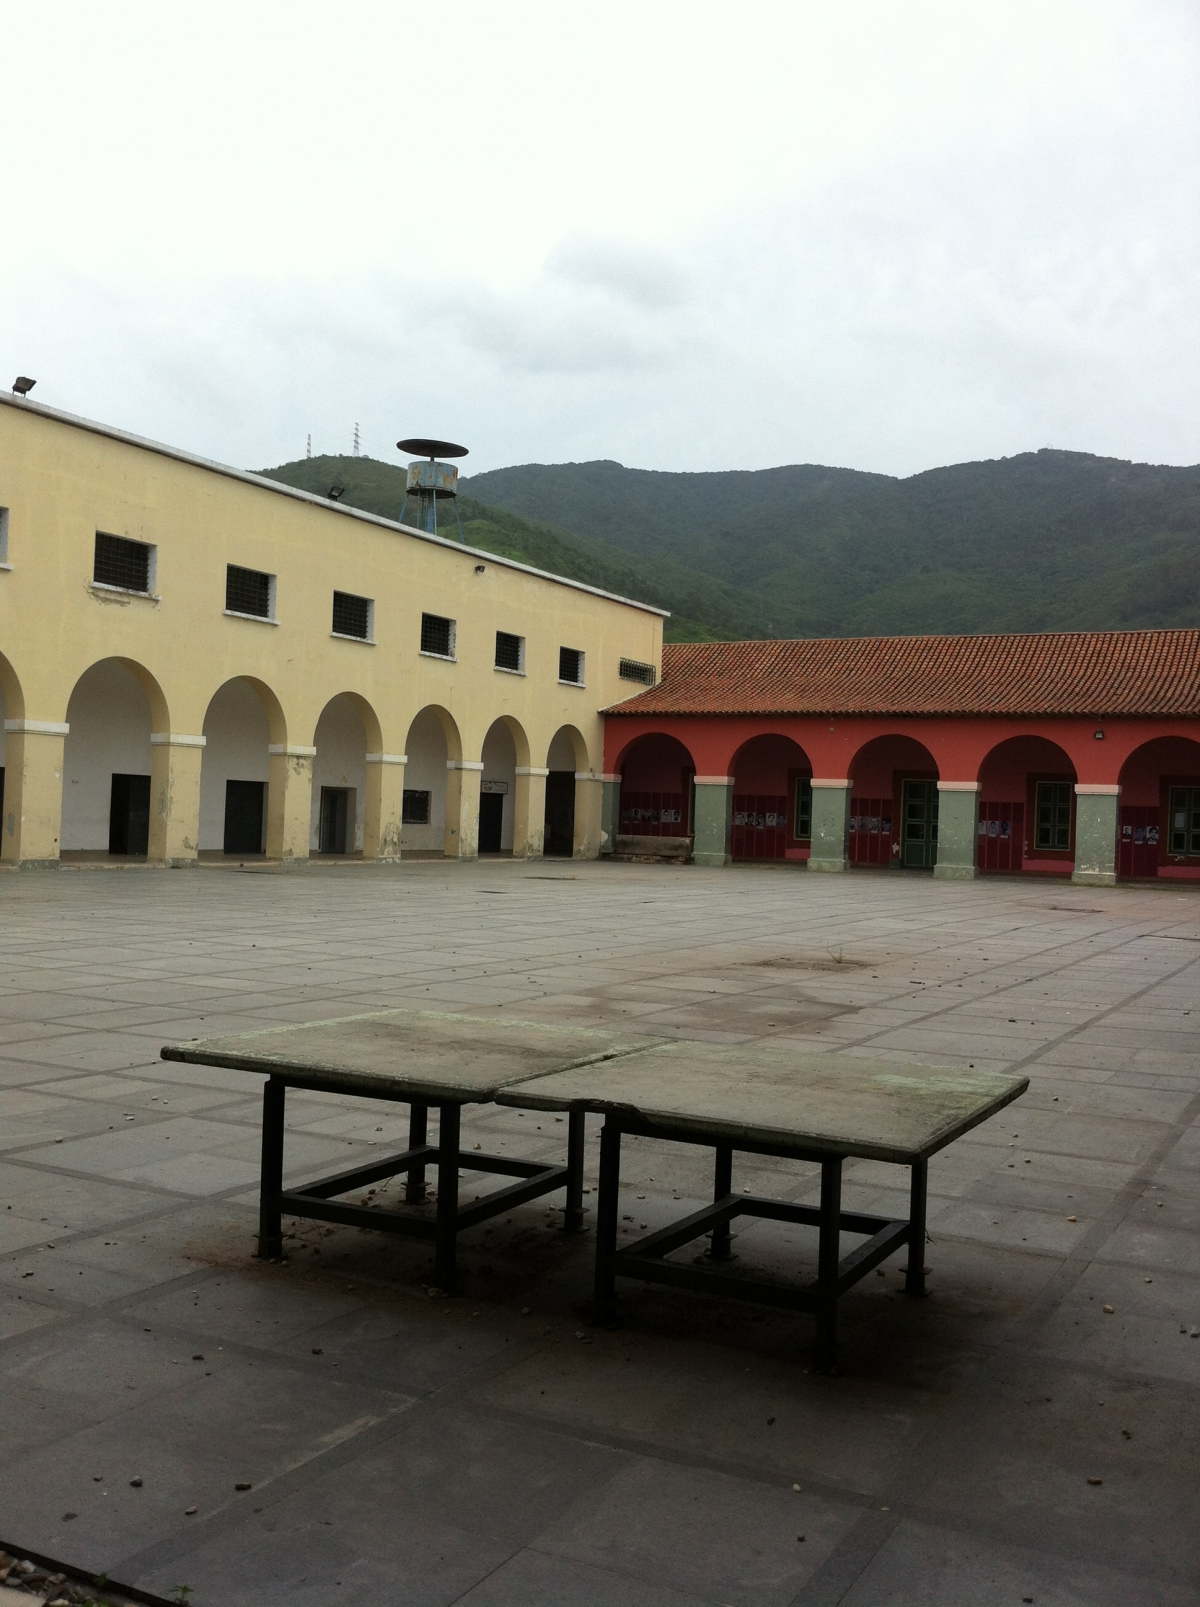 The courtyard of the former San Carlos prison, very different from how it looked when it was home to hundreds of political dissidents.  Afro-Venezuelan abolitionist and independence leader was murdered in that courtyard on December 10, 1796.